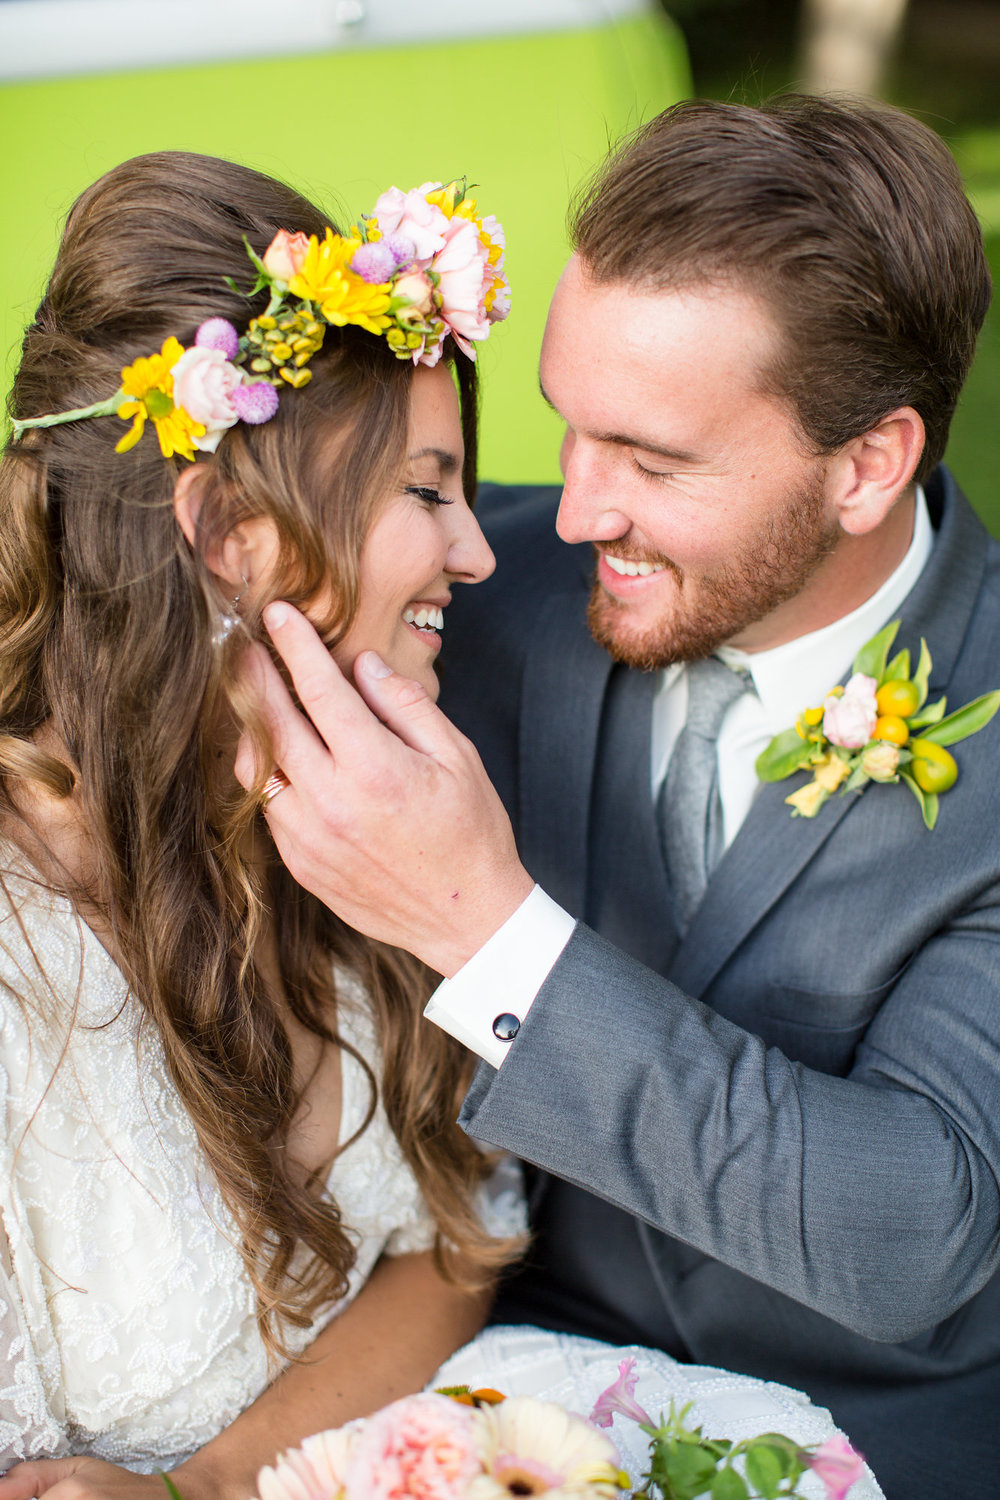 groom holding brides face smiling at one another bride wearing bright flower crown kim baker beauty san jose california makeup artist wedding styled photoshoot at the holly farm in carmel